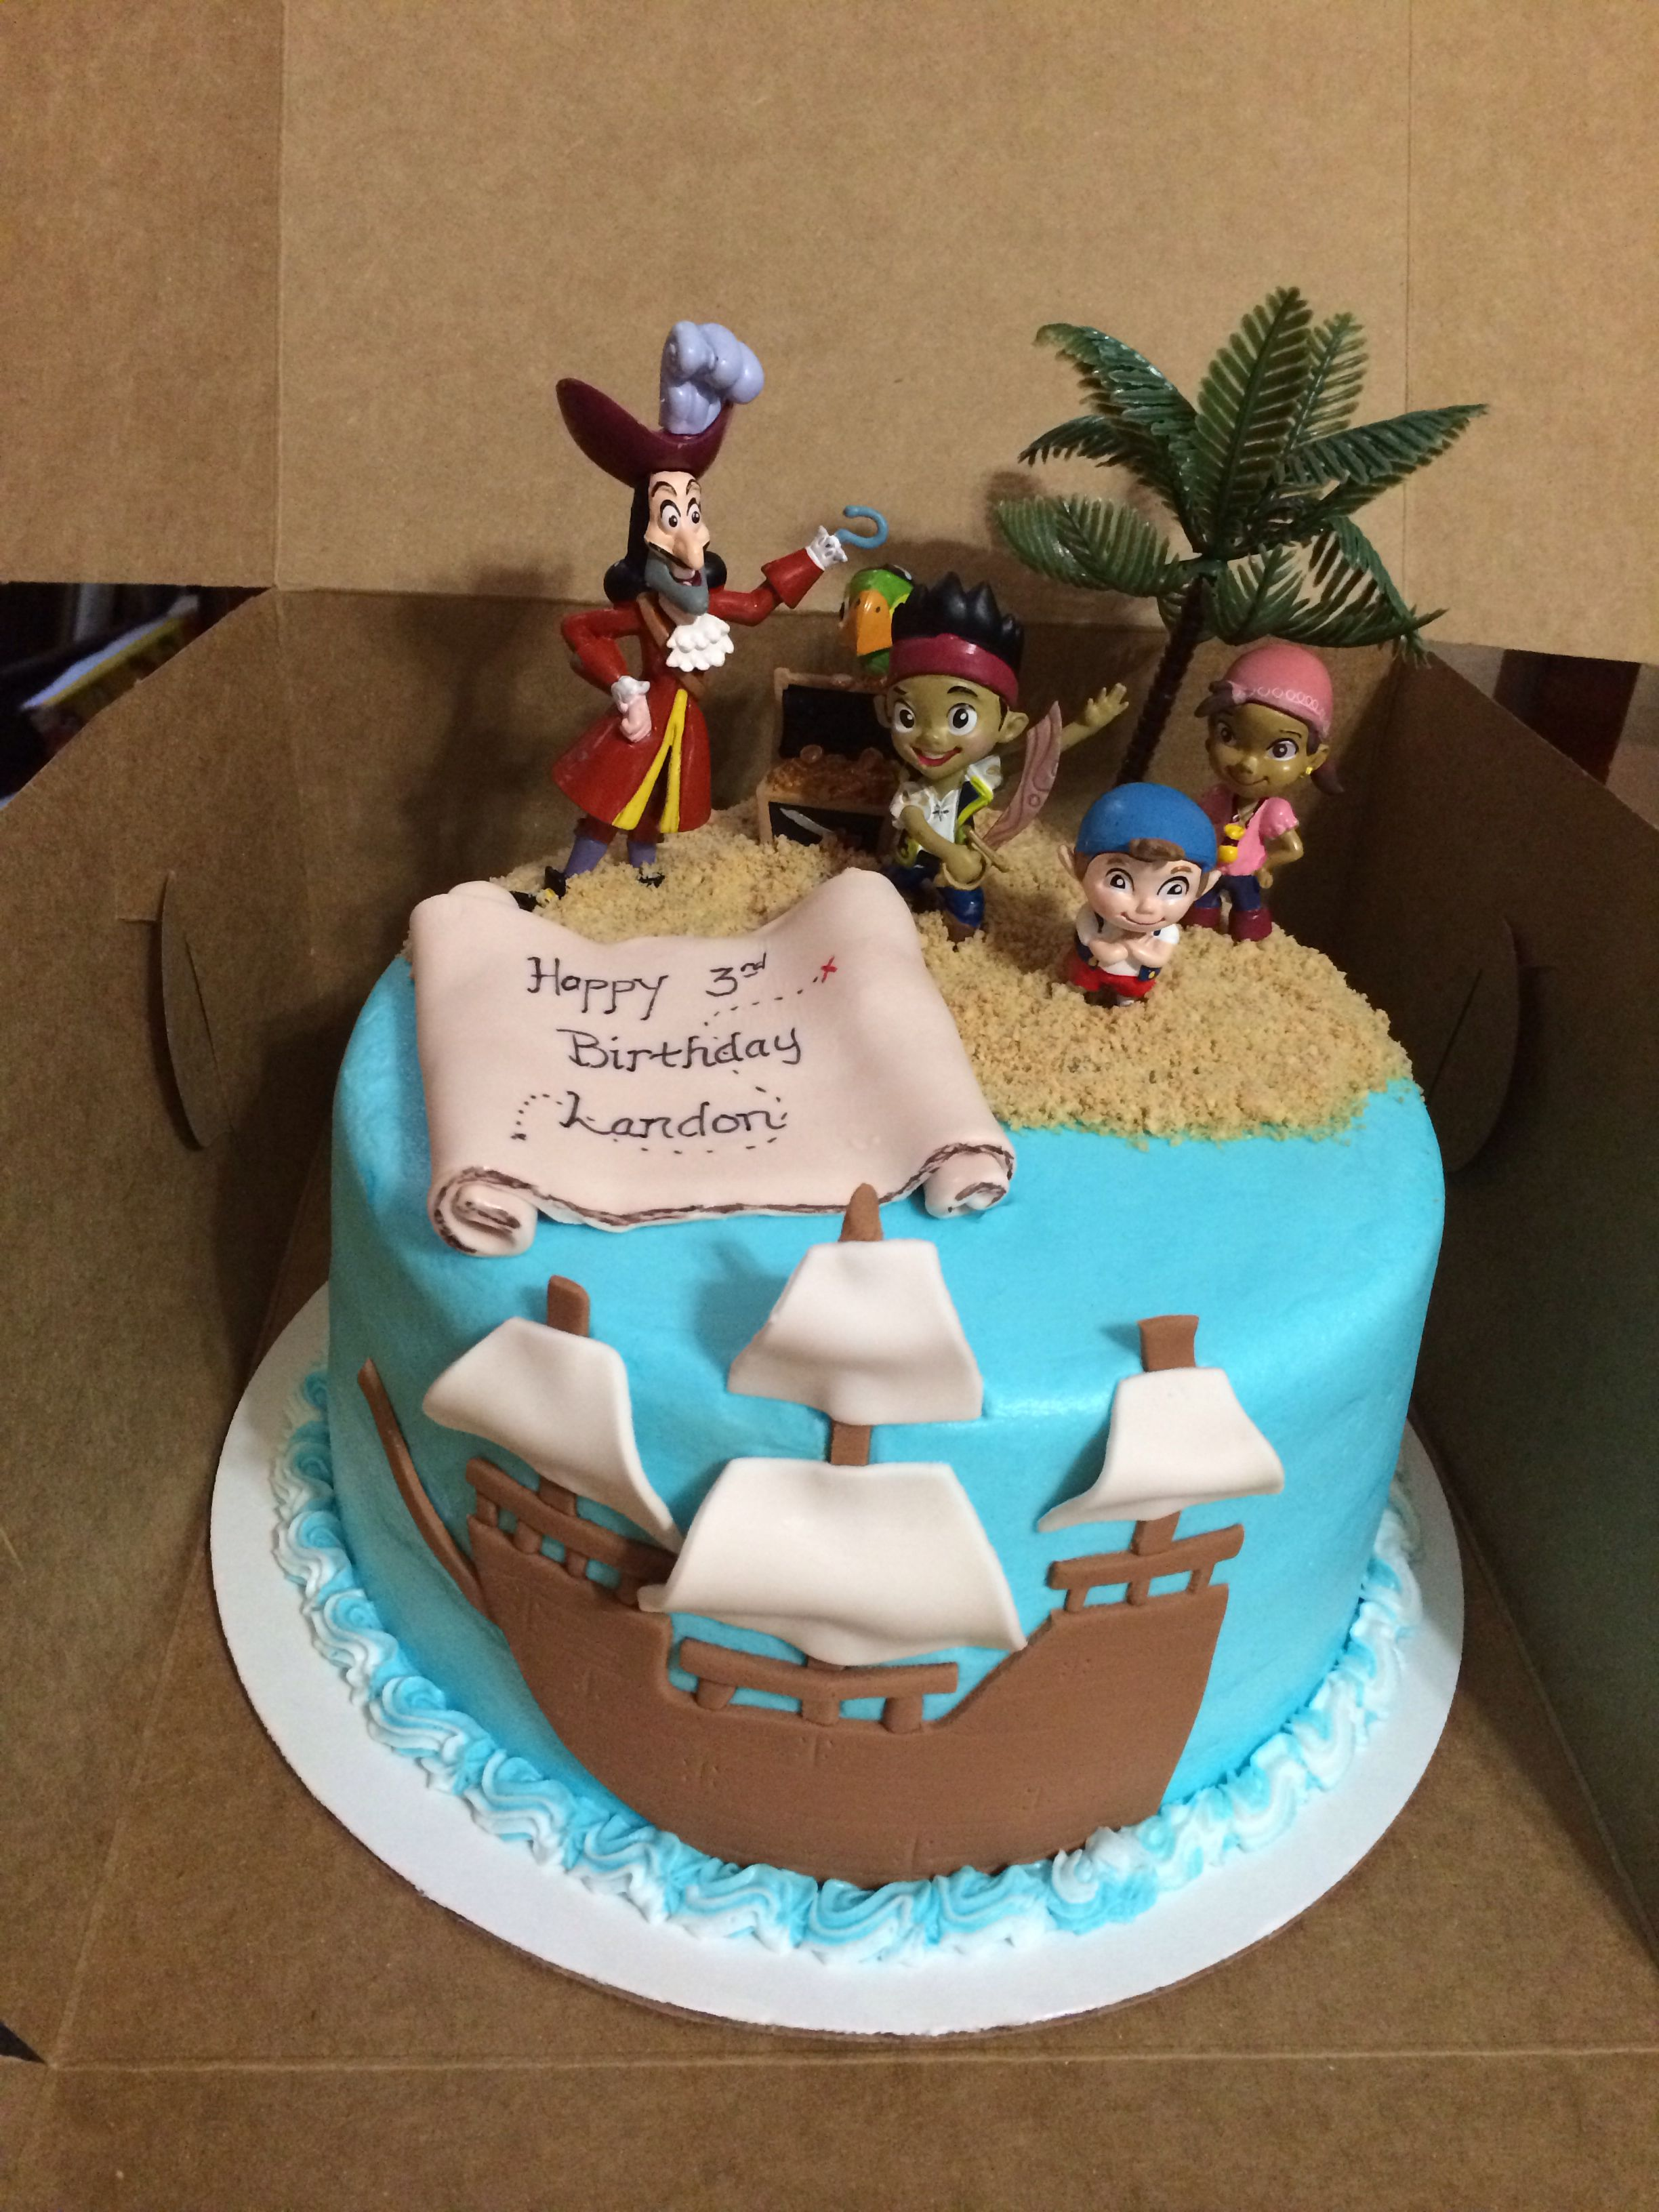 Swell Landons Birthday Cake Jake And The Neverland Pirates Cake Funny Birthday Cards Online Alyptdamsfinfo